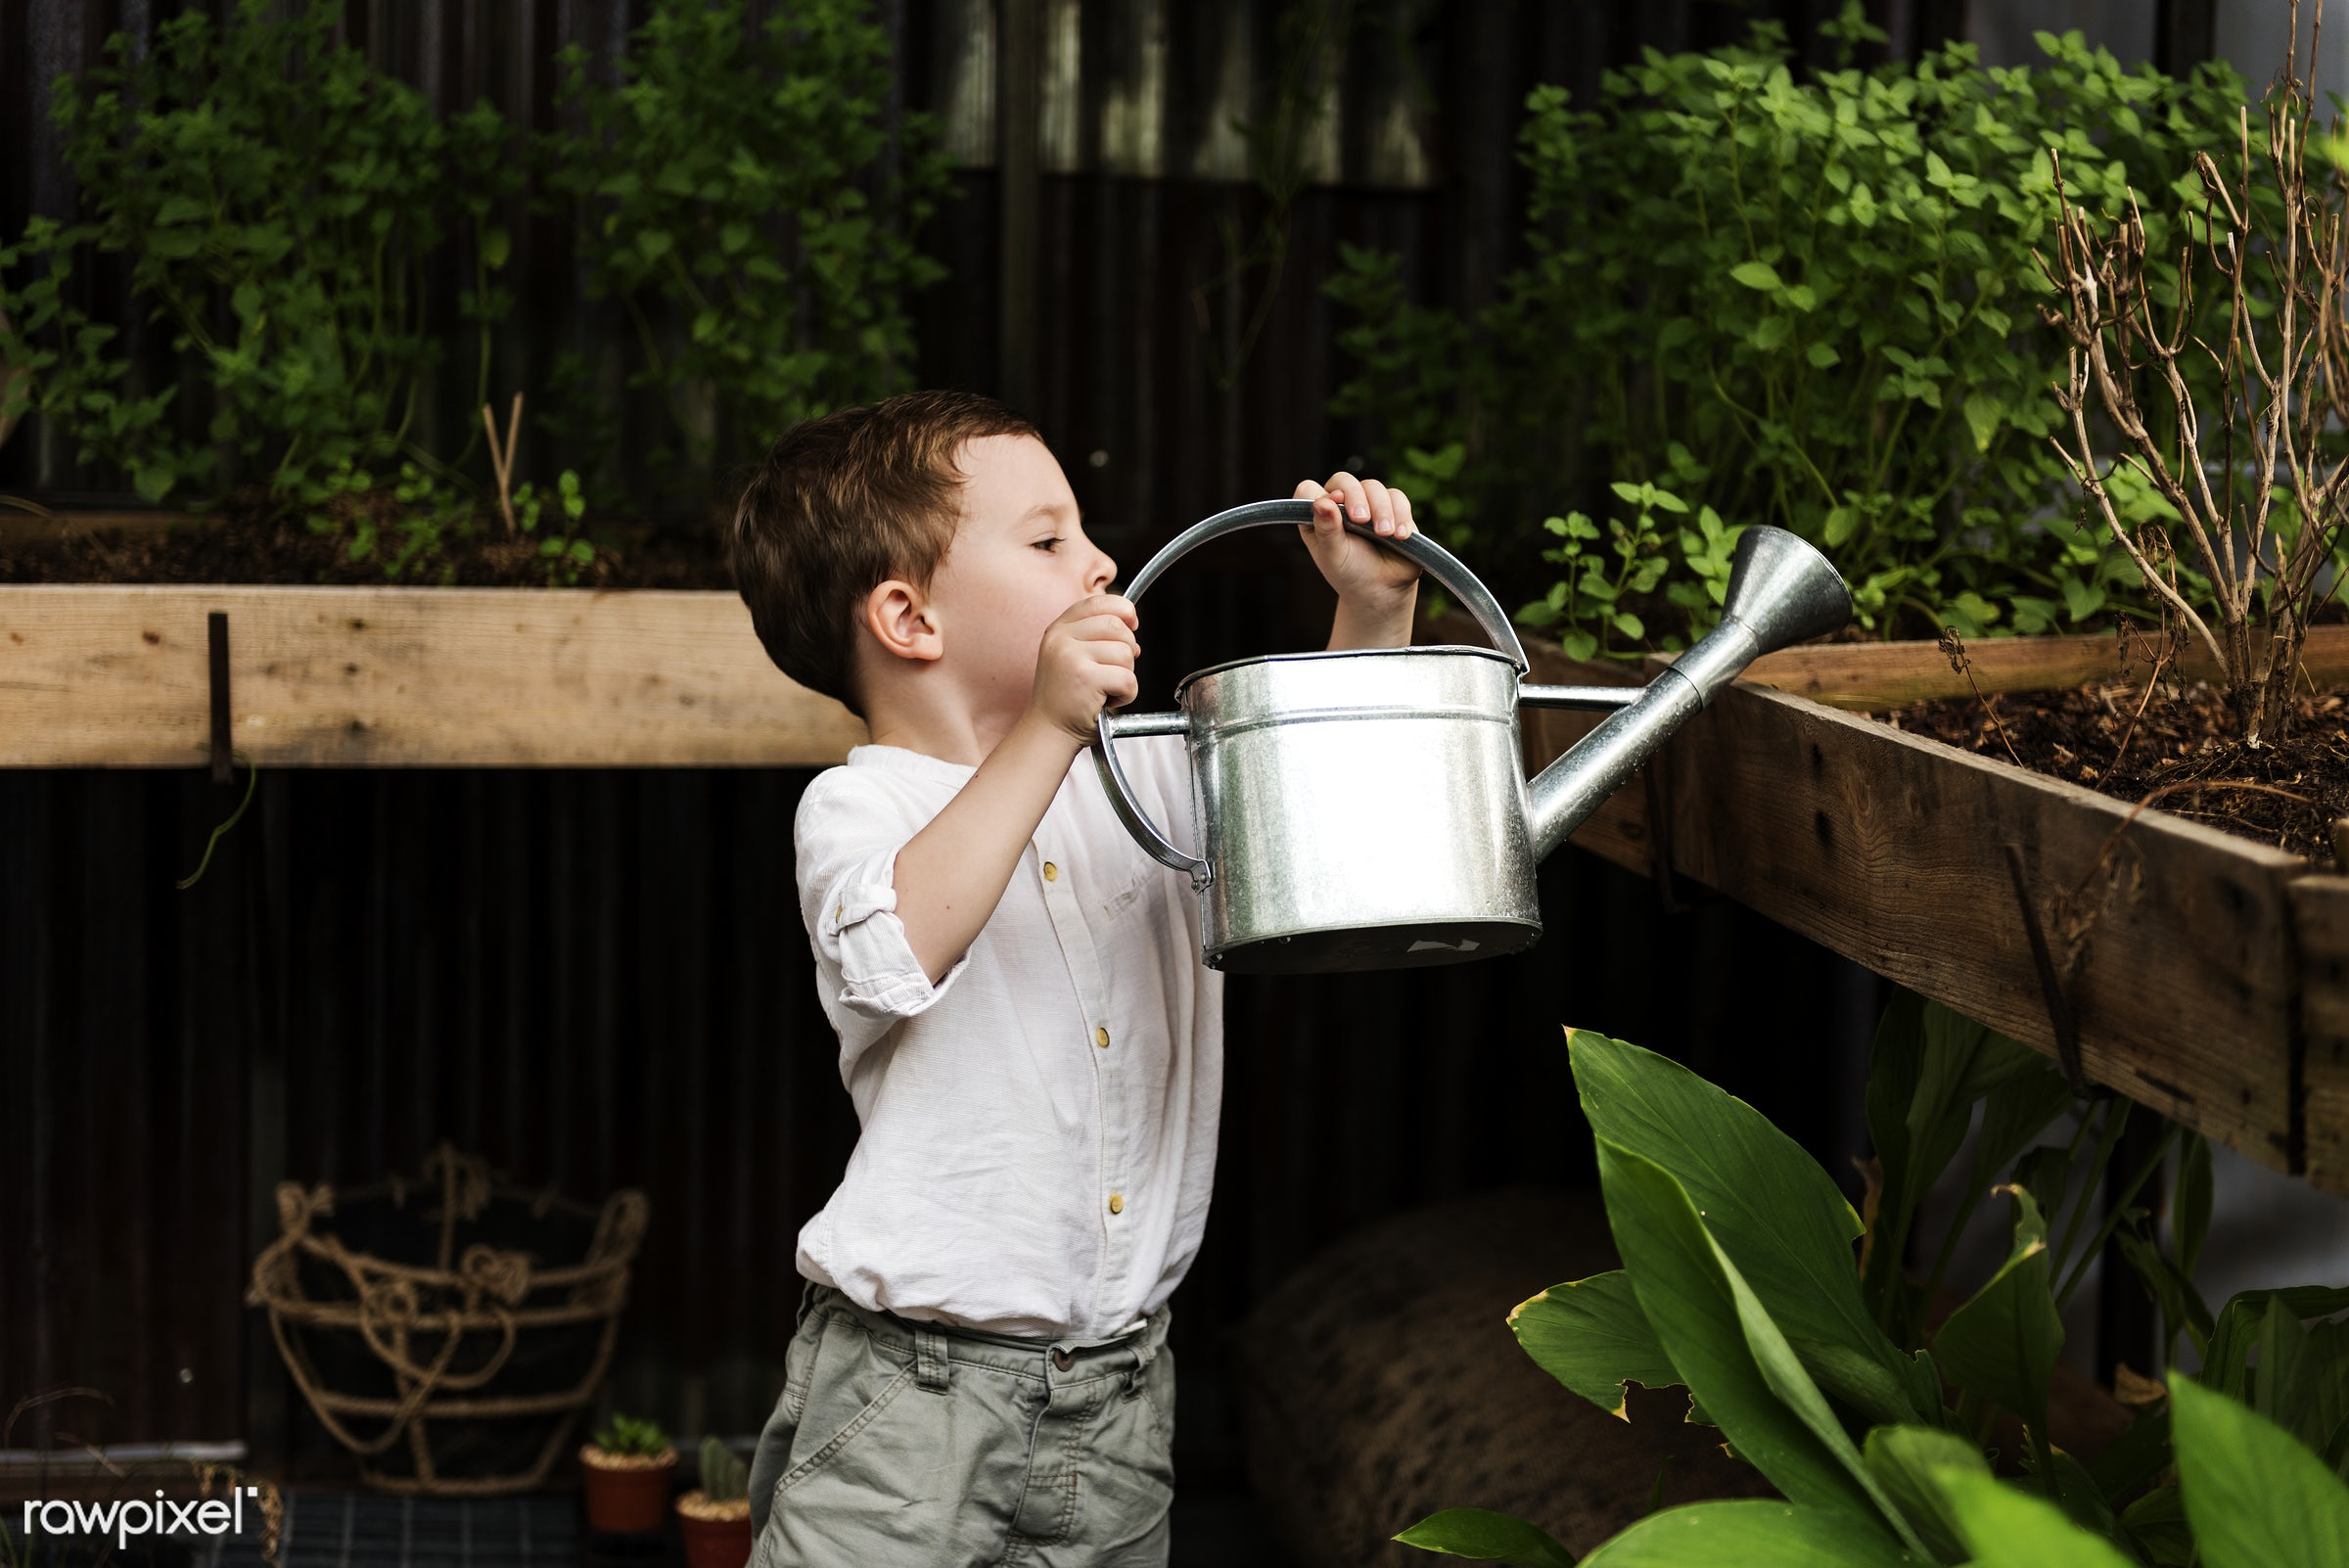 Young boy watering plants in the garden - alone, boy, can, child, environment, garden, green, hobbies, kid, people, plants,...